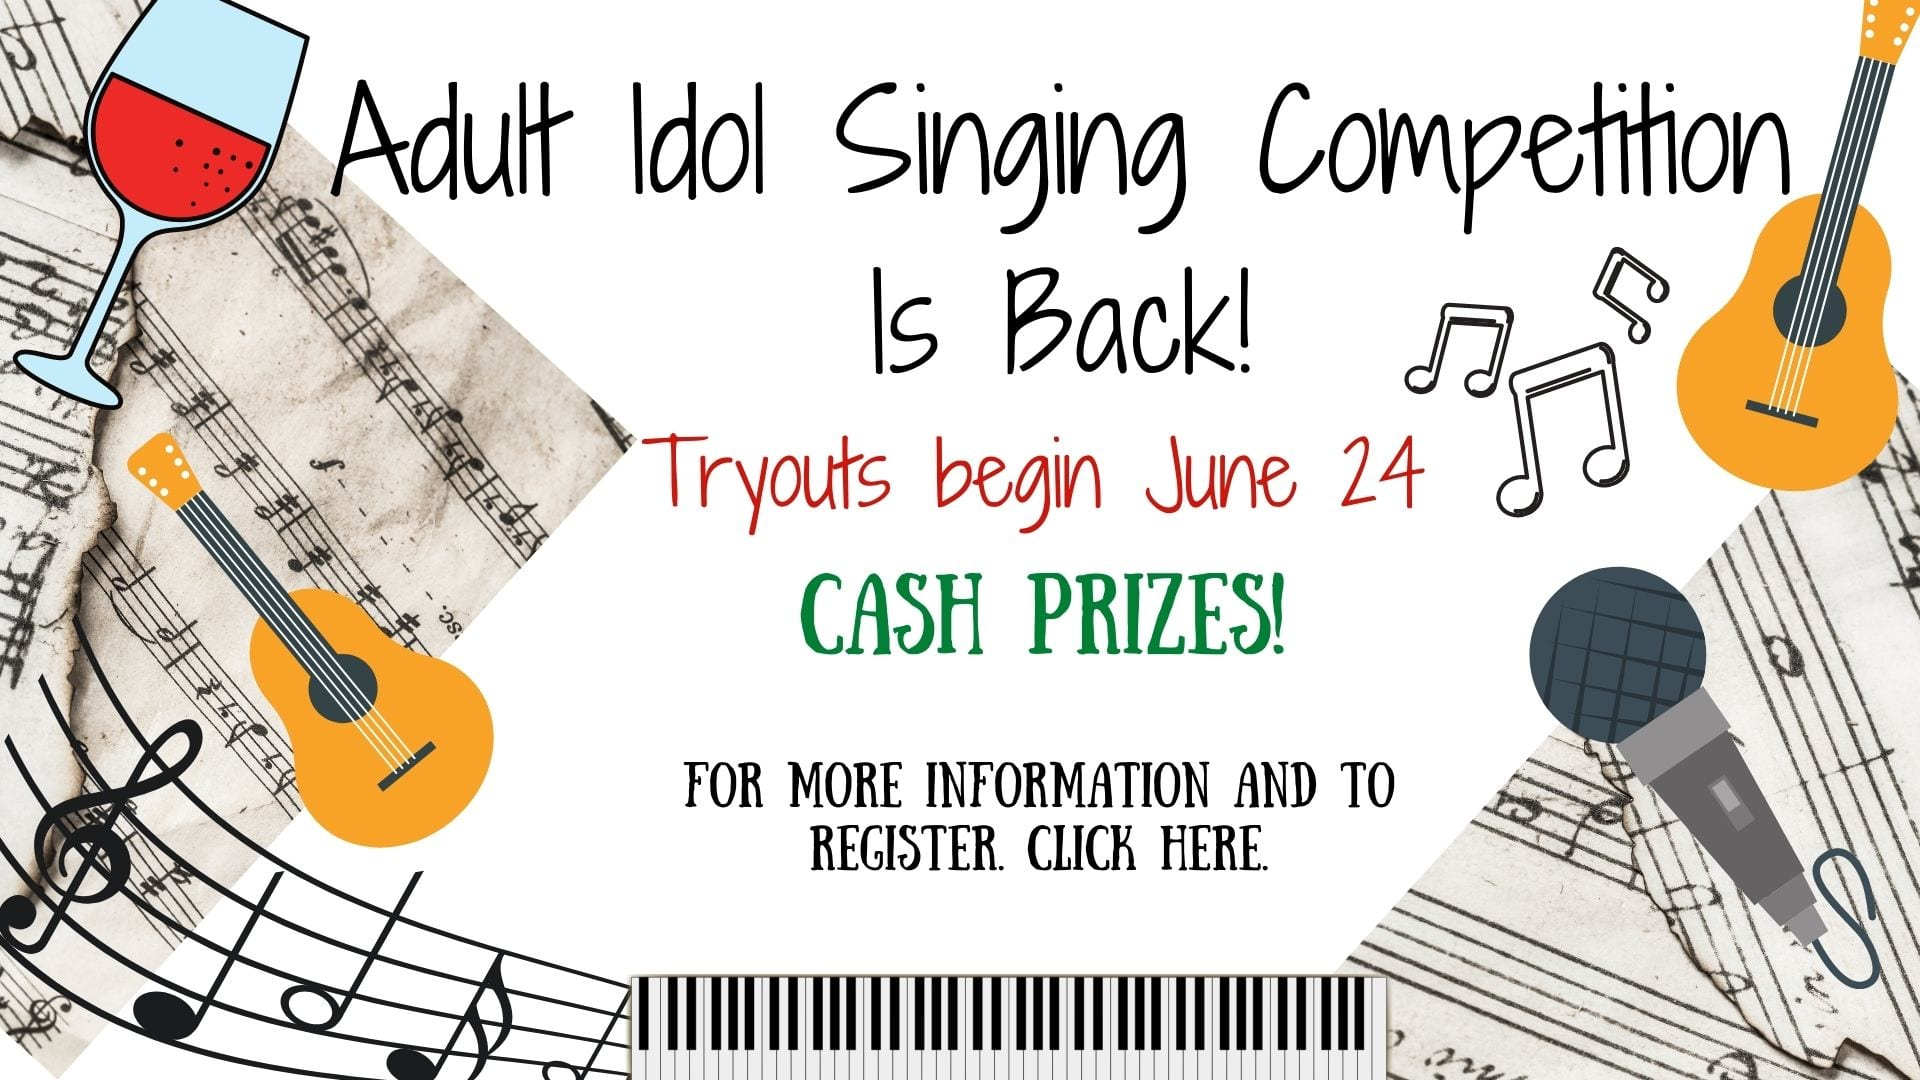 Idol competition 2021 adult